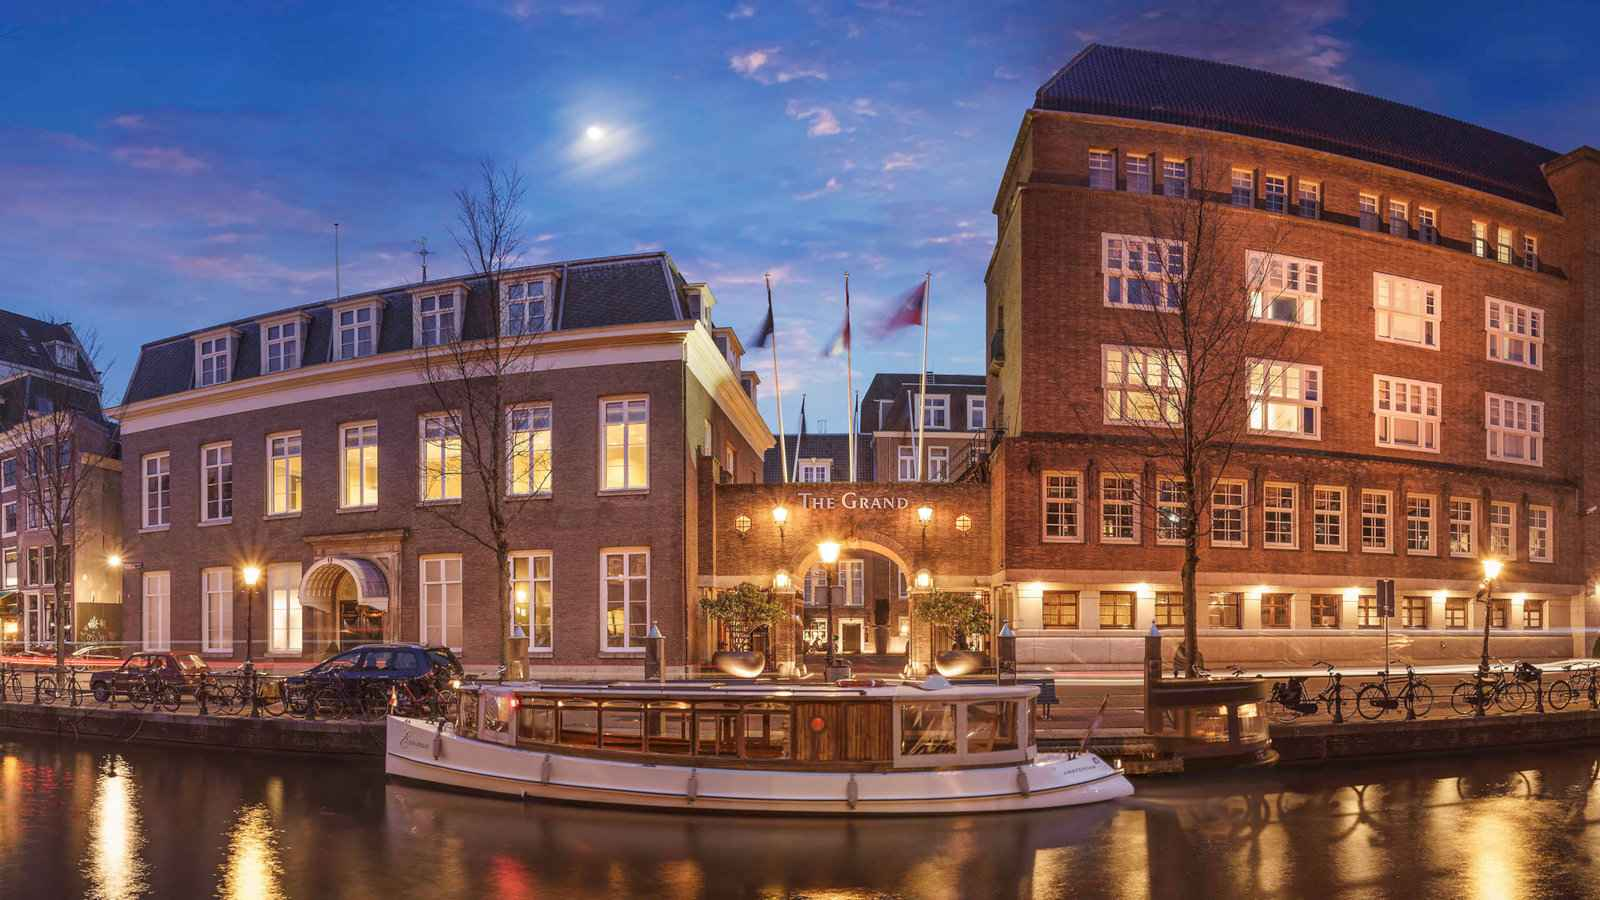 The Sofitel Legend The Grand Amsterdam is a stunning place to stay in Amsterdam's red light district!